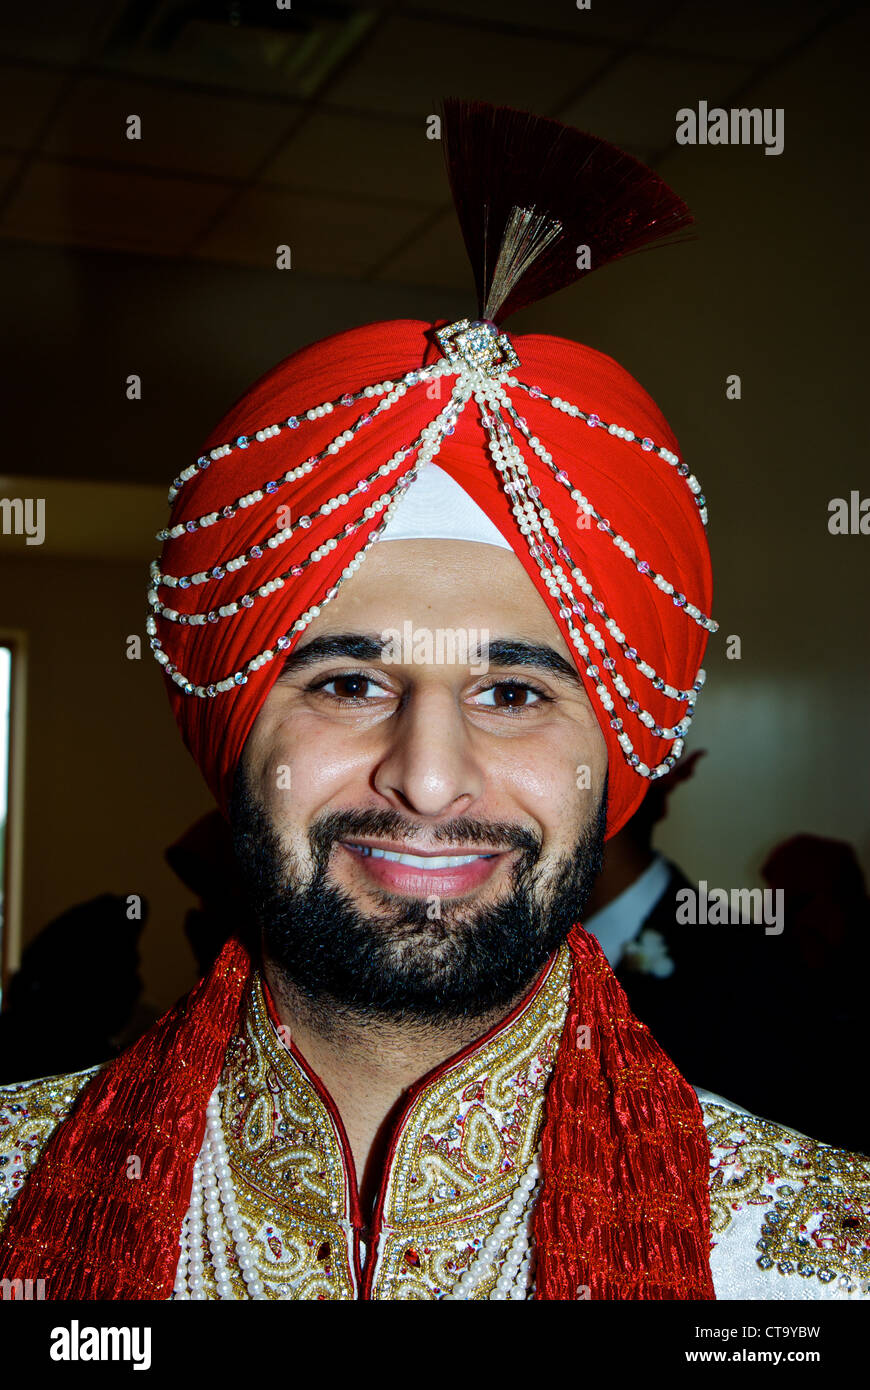 Traditional East Indian Wedding Groom Red Turban Special